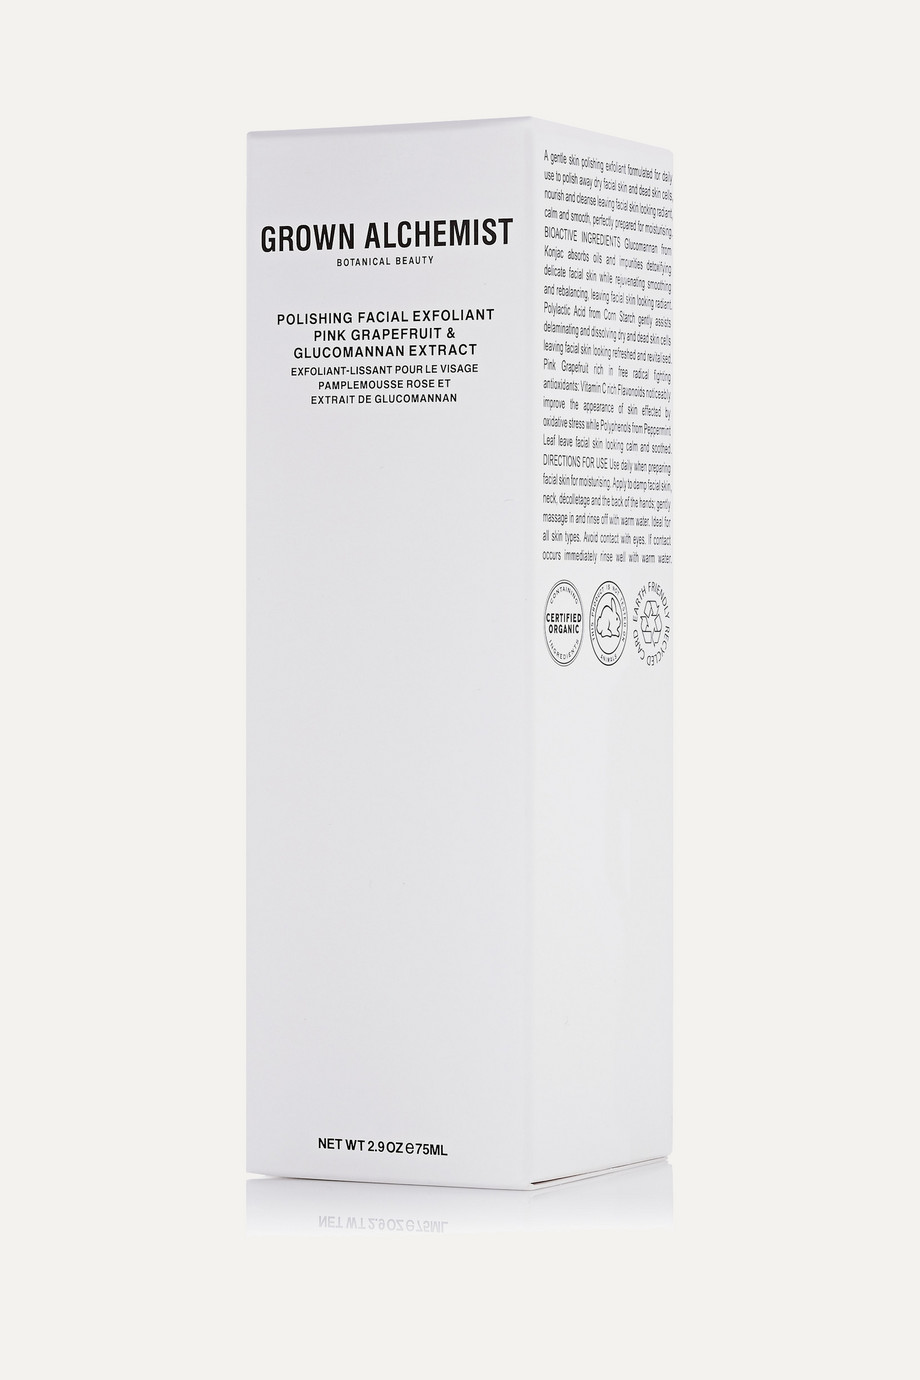 GROWN ALCHEMIST Polishing Facial Exfoliant, 75ml